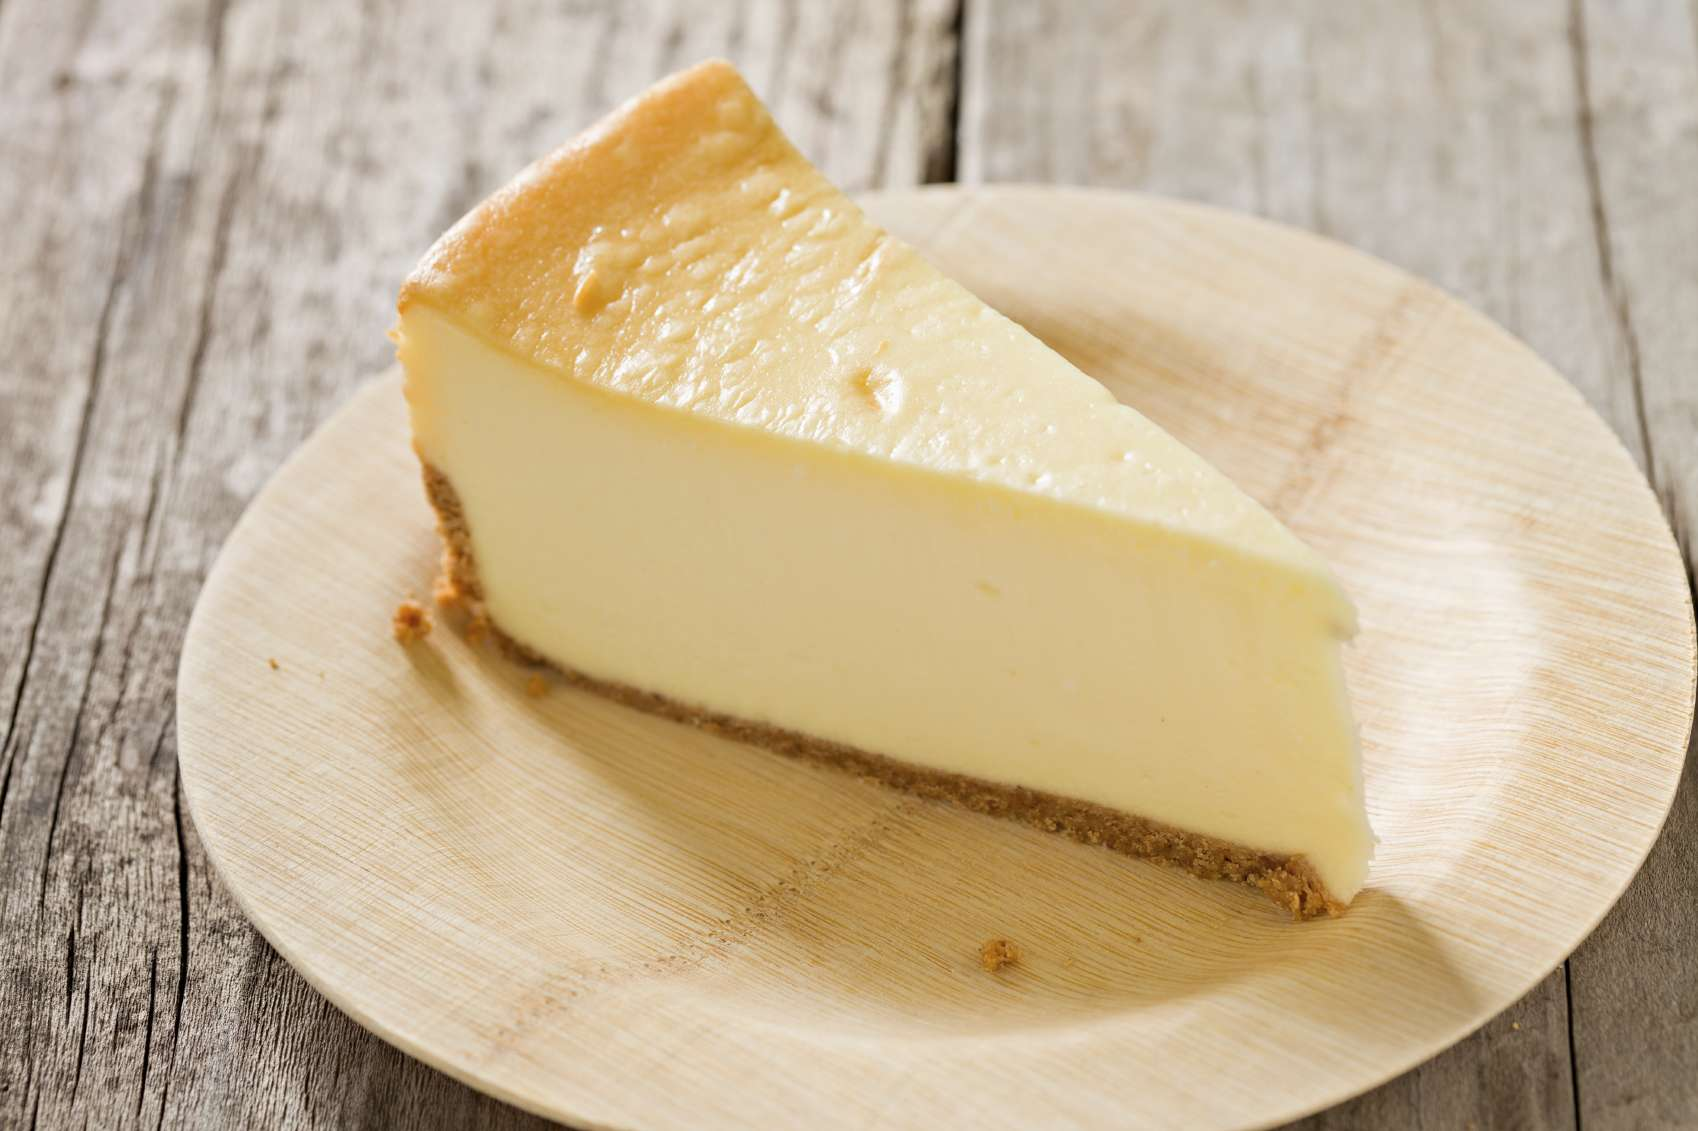 Recette Du Gateau Au Fromage Blanc Cheese Cake